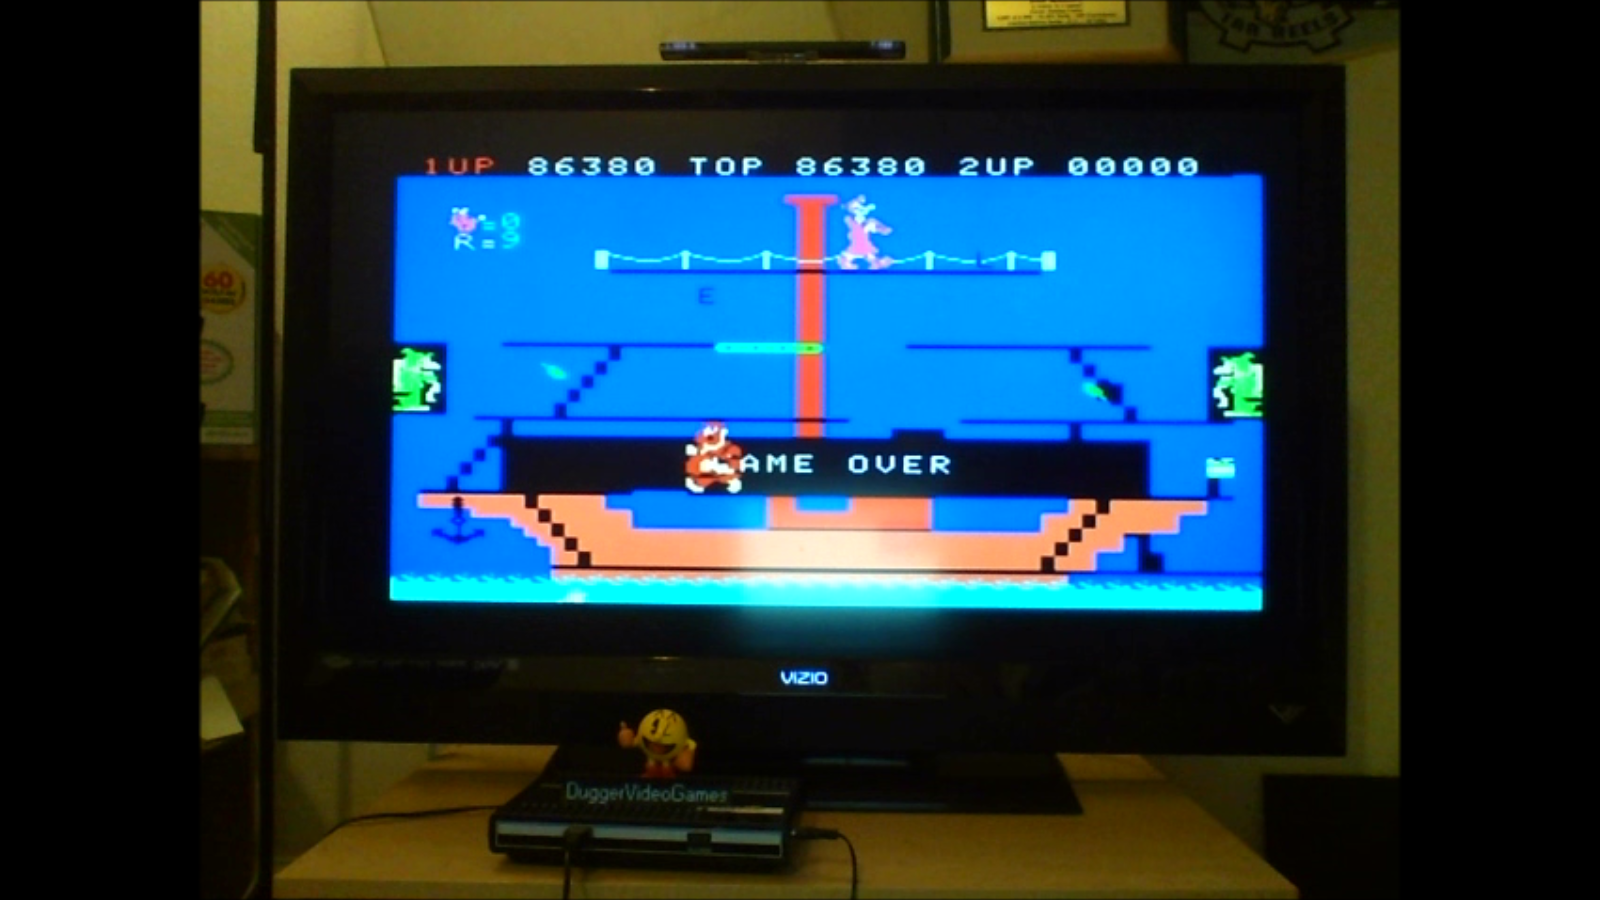 DuggerVideoGames: Popeye: Skill 2 (Colecovision Emulated) 86,380 points on 2016-07-07 20:02:59